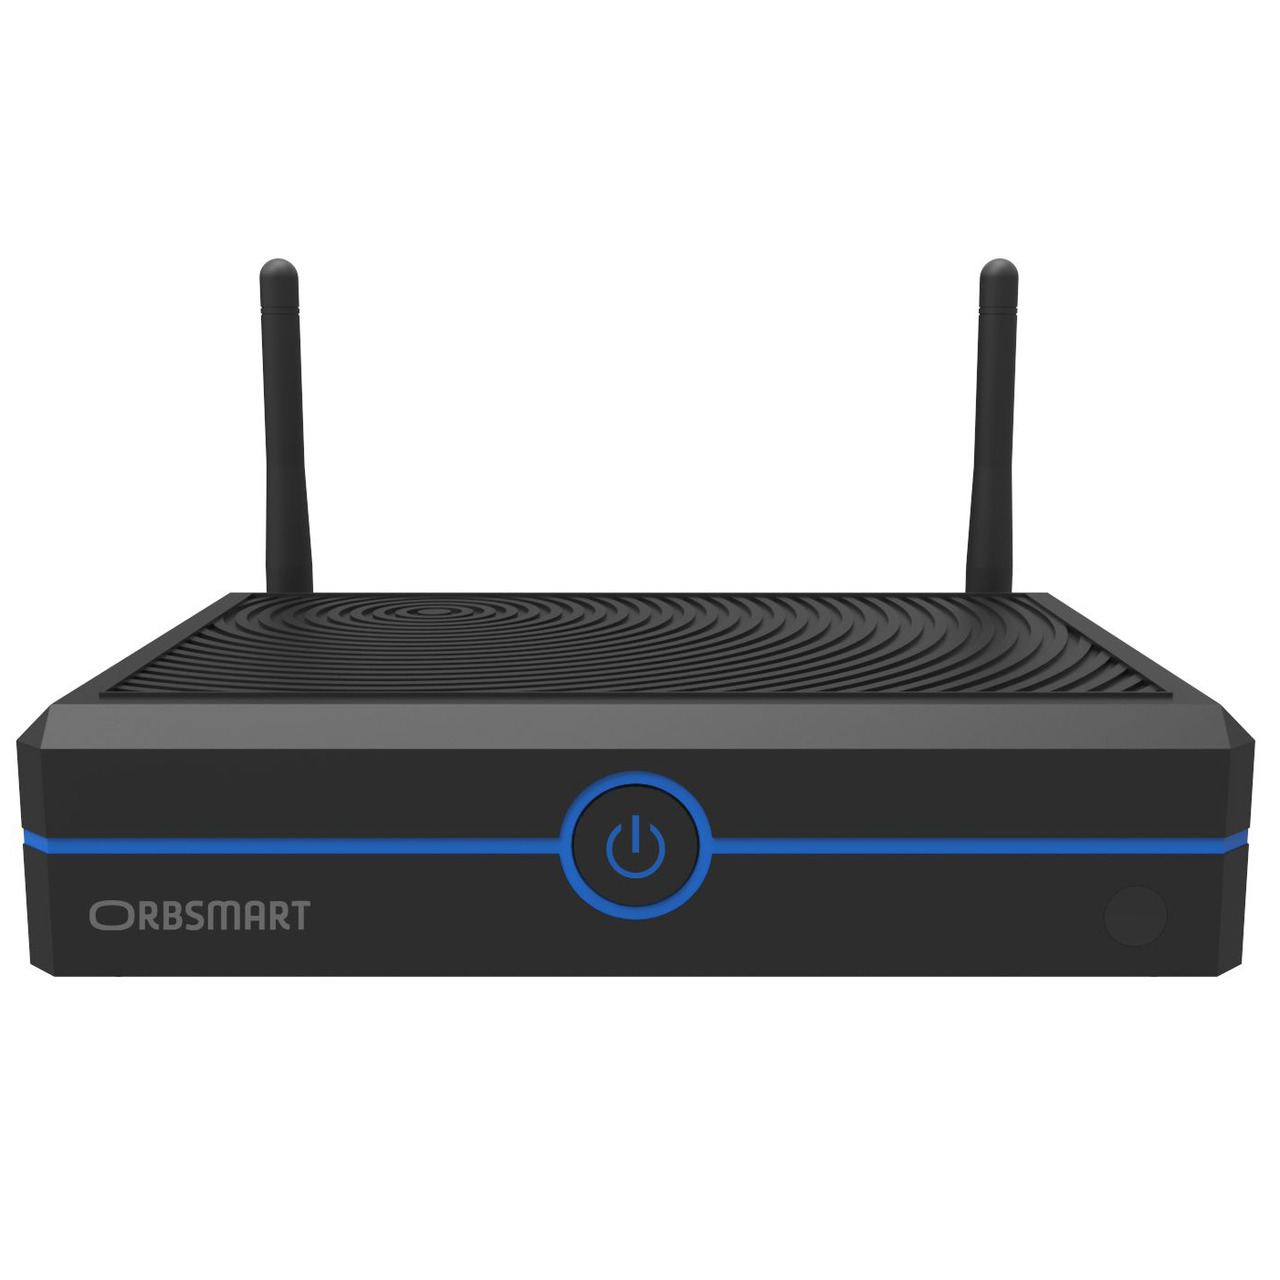 Orbsmart Windows-Mini-PC AW-11- Windows 10 Professional (64-bit)- WLAN (2-4-5 GHz)- Bluetooth 4-2